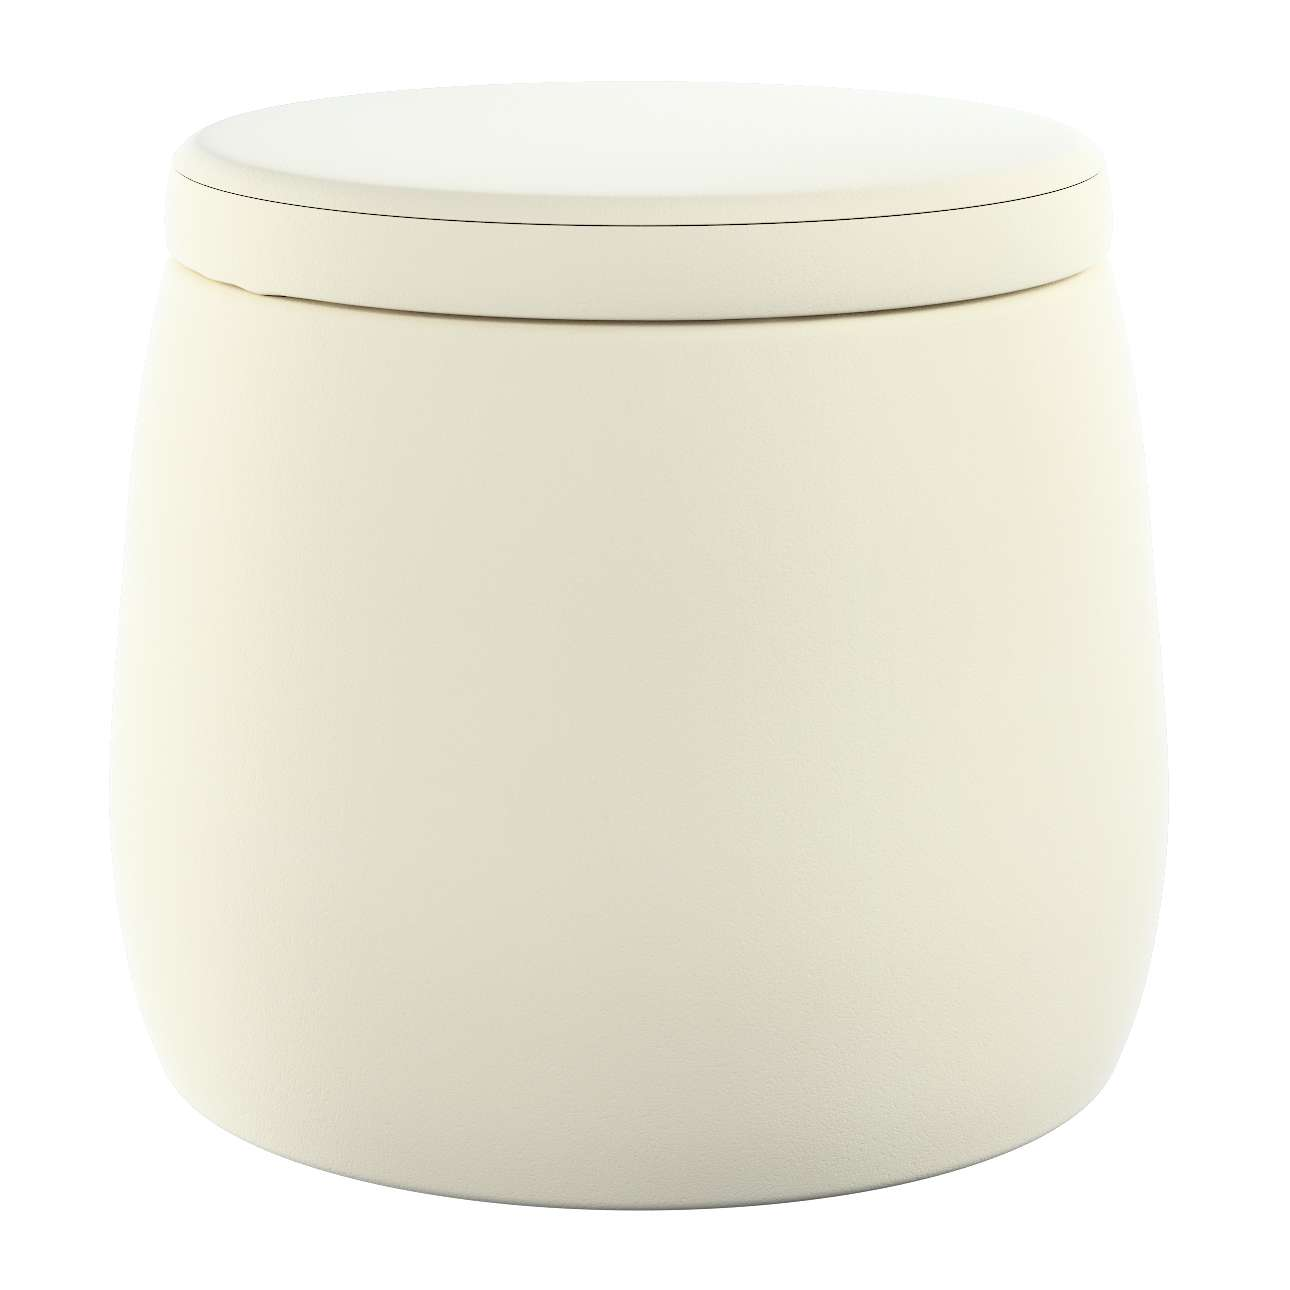 Candy Jar pouf in collection Posh Velvet, fabric: 704-10